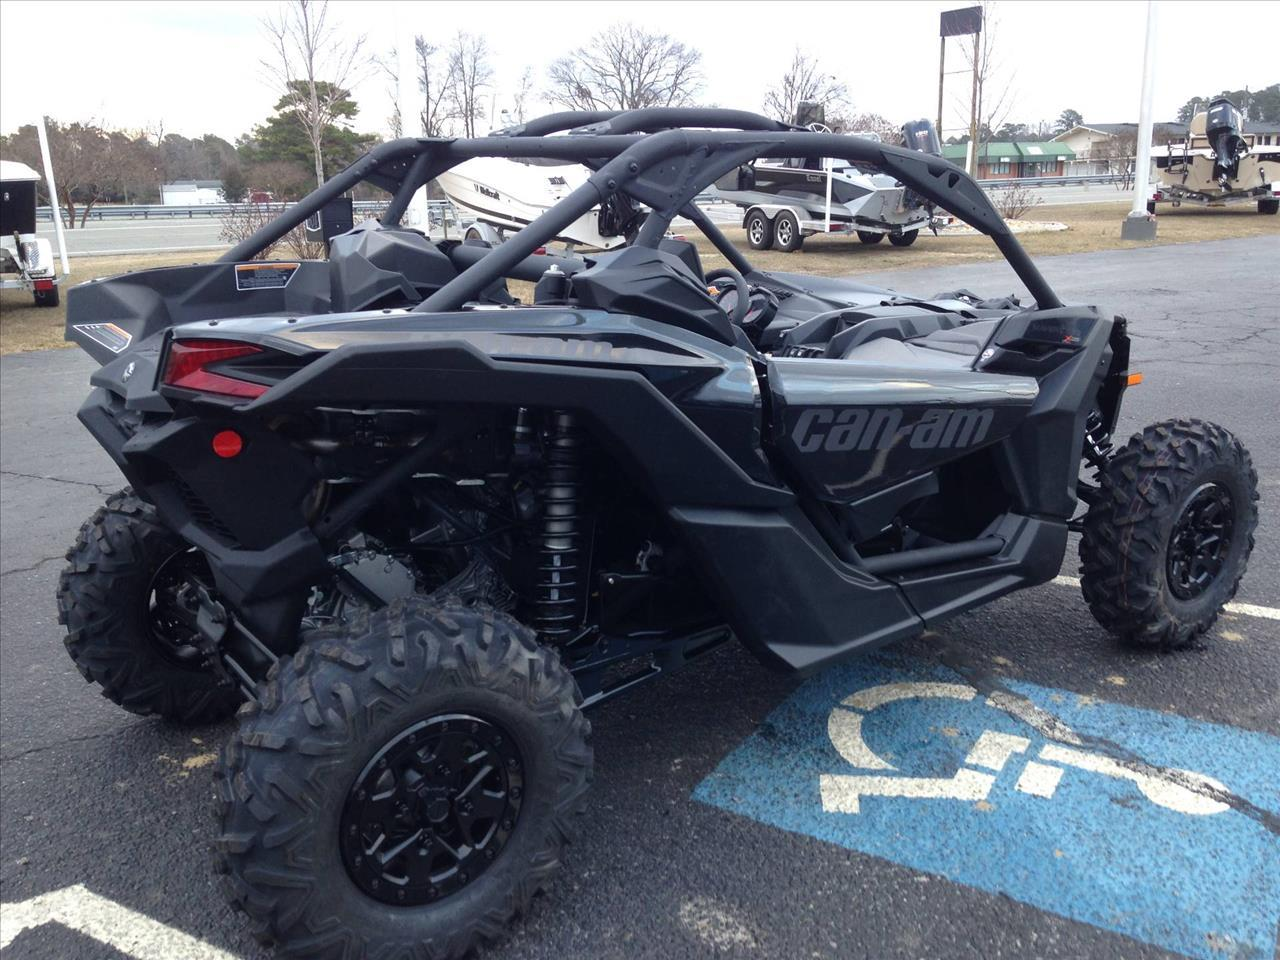 2017 Can-Am Maverick X3 X ds Turbo R for sale at Vehicle Network, LLC - Performance East, INC. in Goldsboro NC